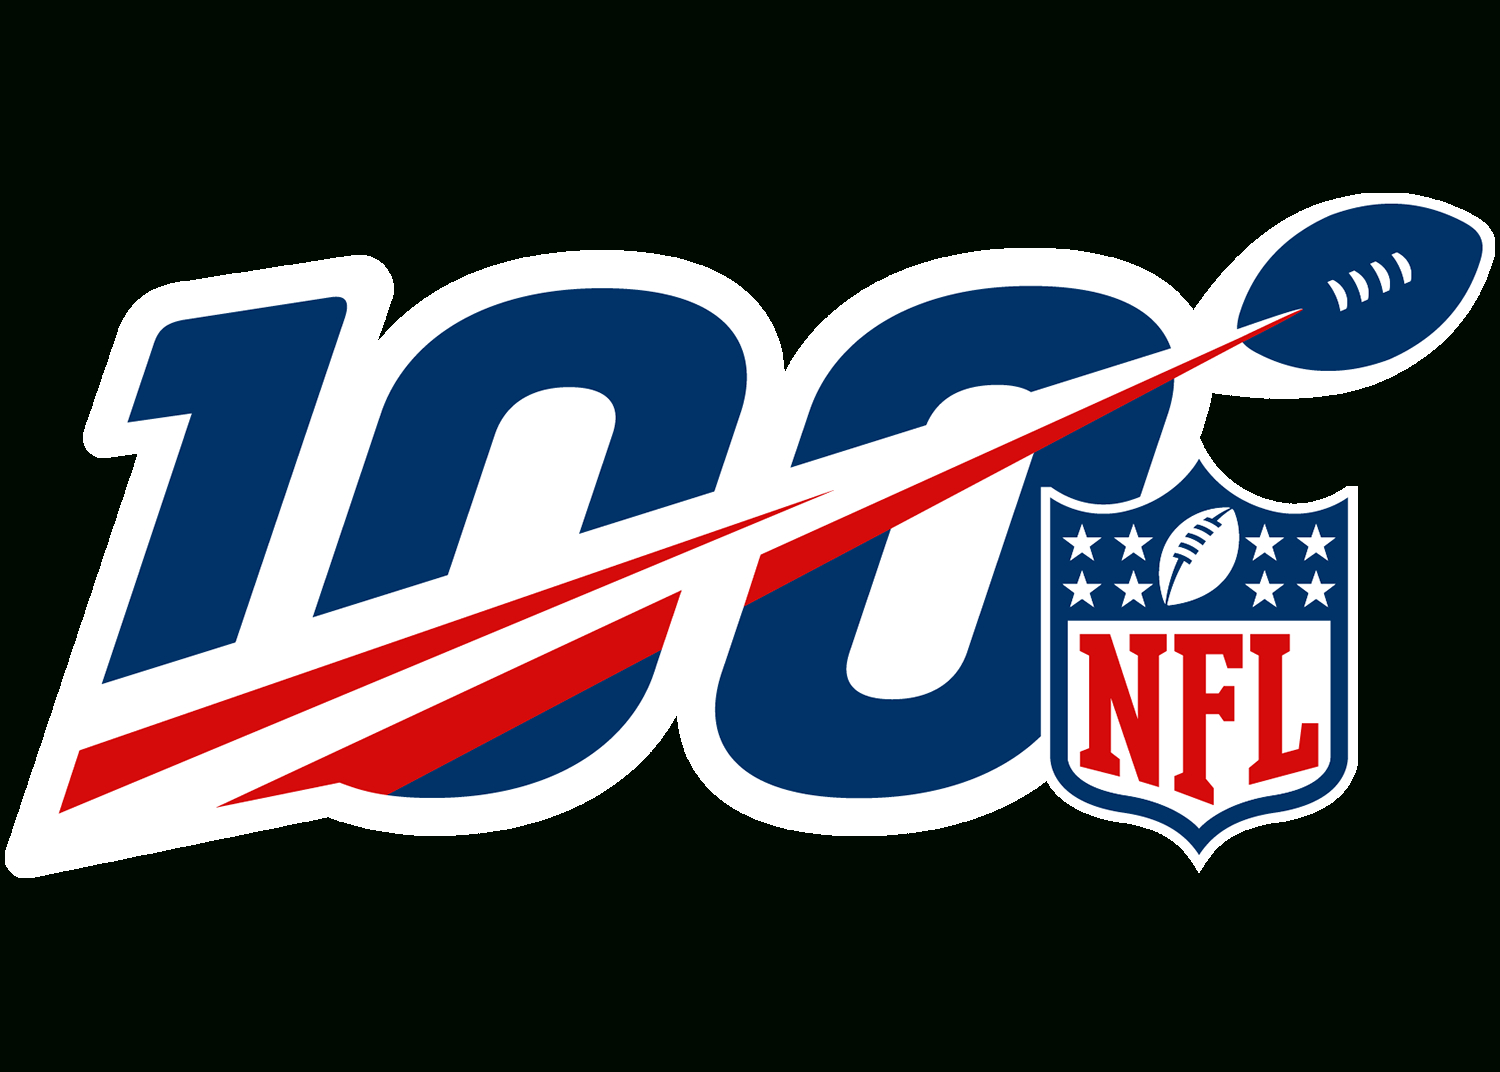 Nfl Tv Schedule 2019: Dates, Times, Channels - Sports Media inside Free Printable Nfl Season Schedule